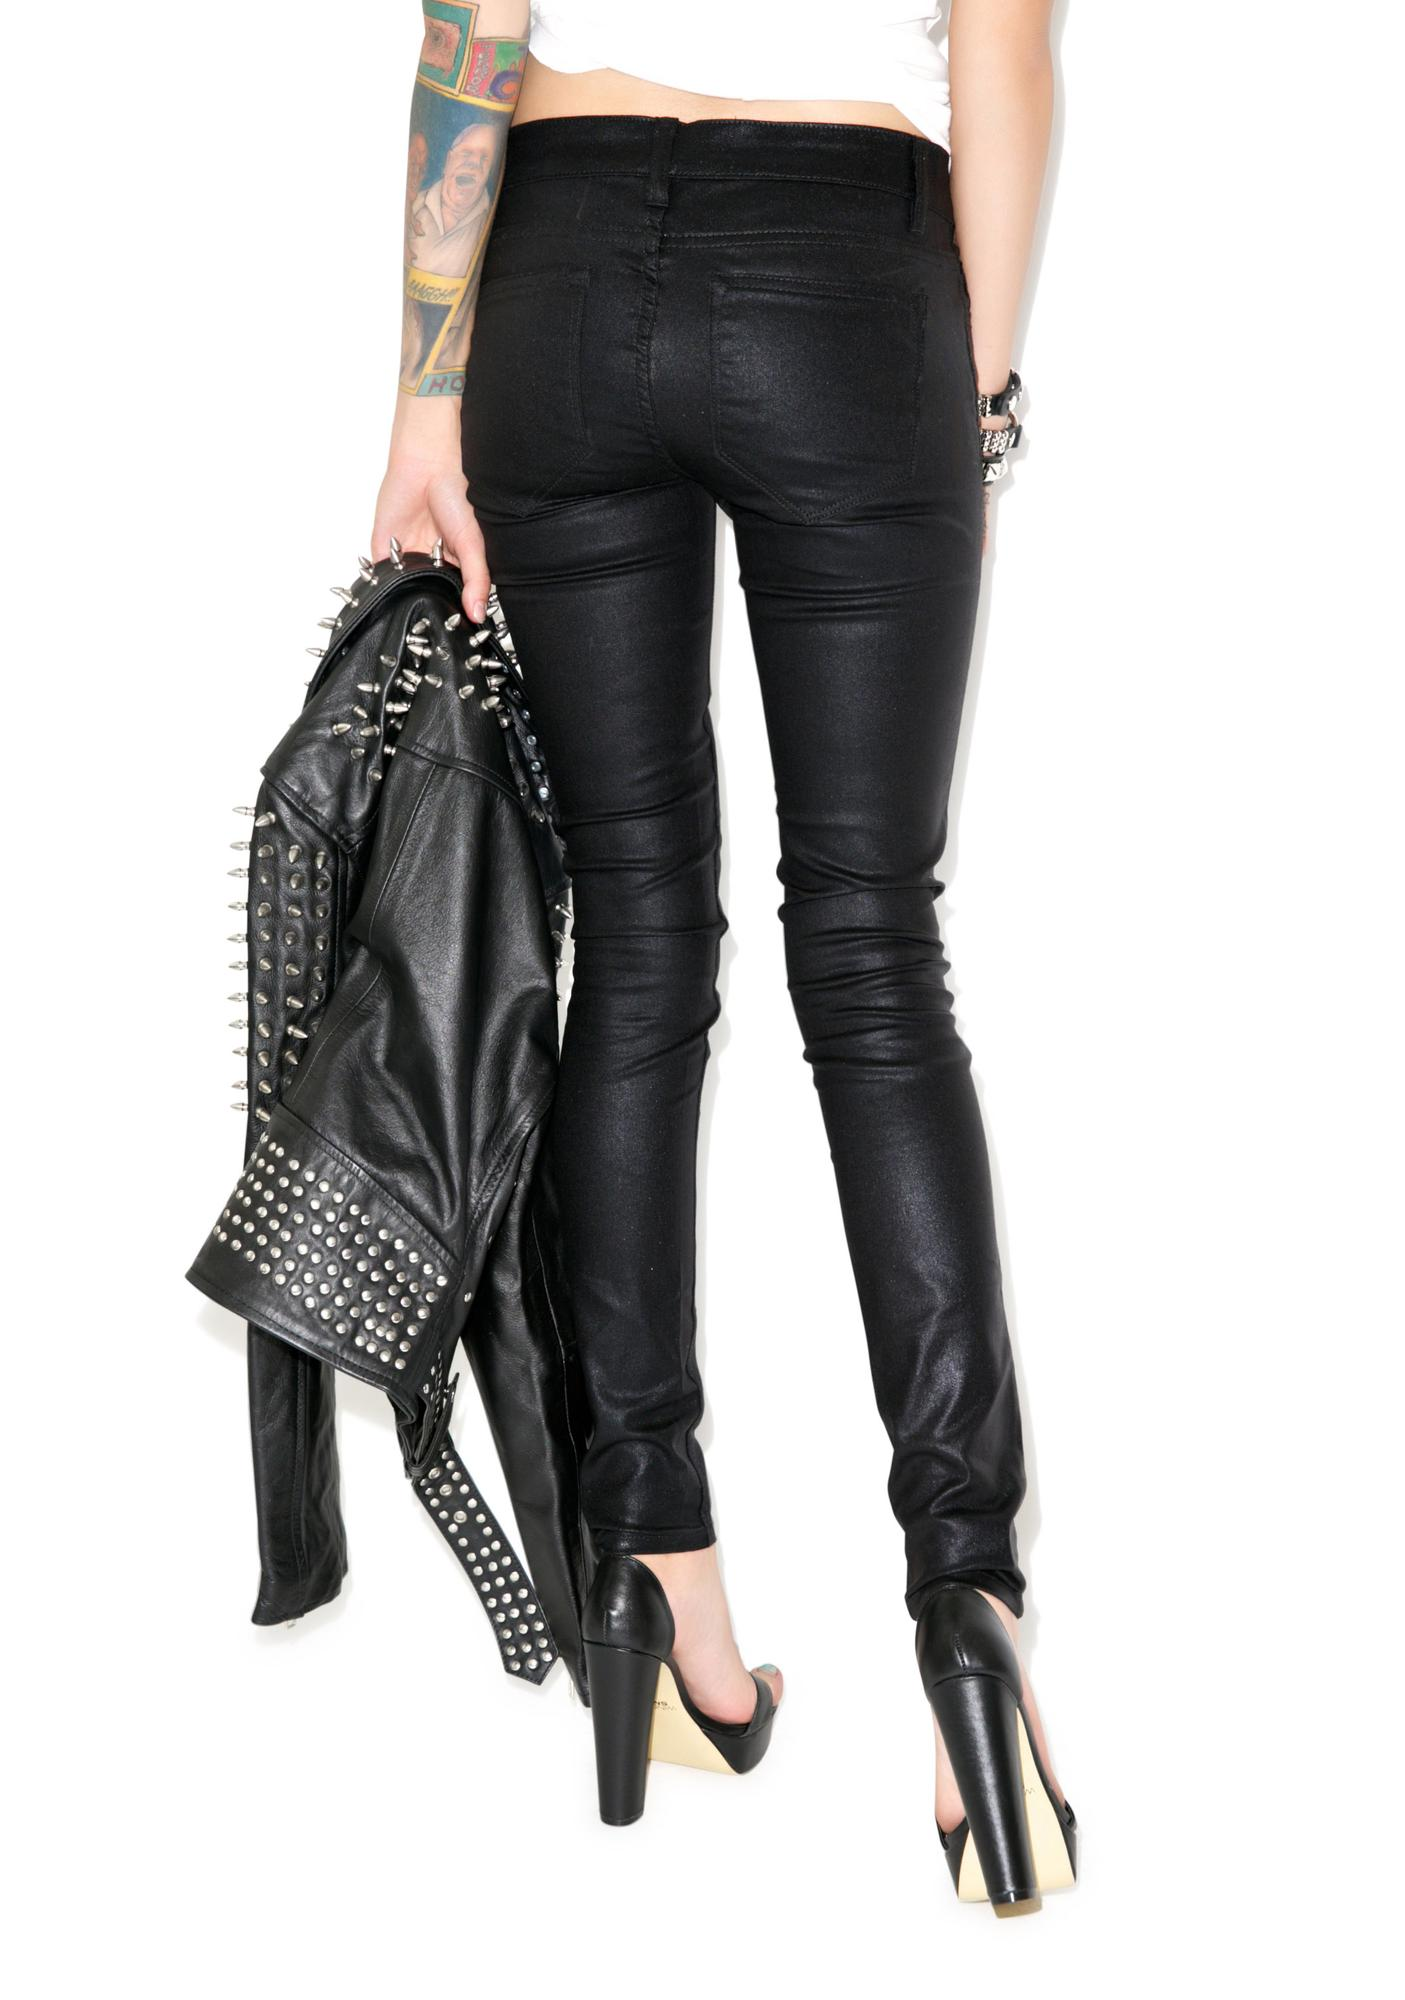 Lip Service Shimmer Slick Stretch Jeans